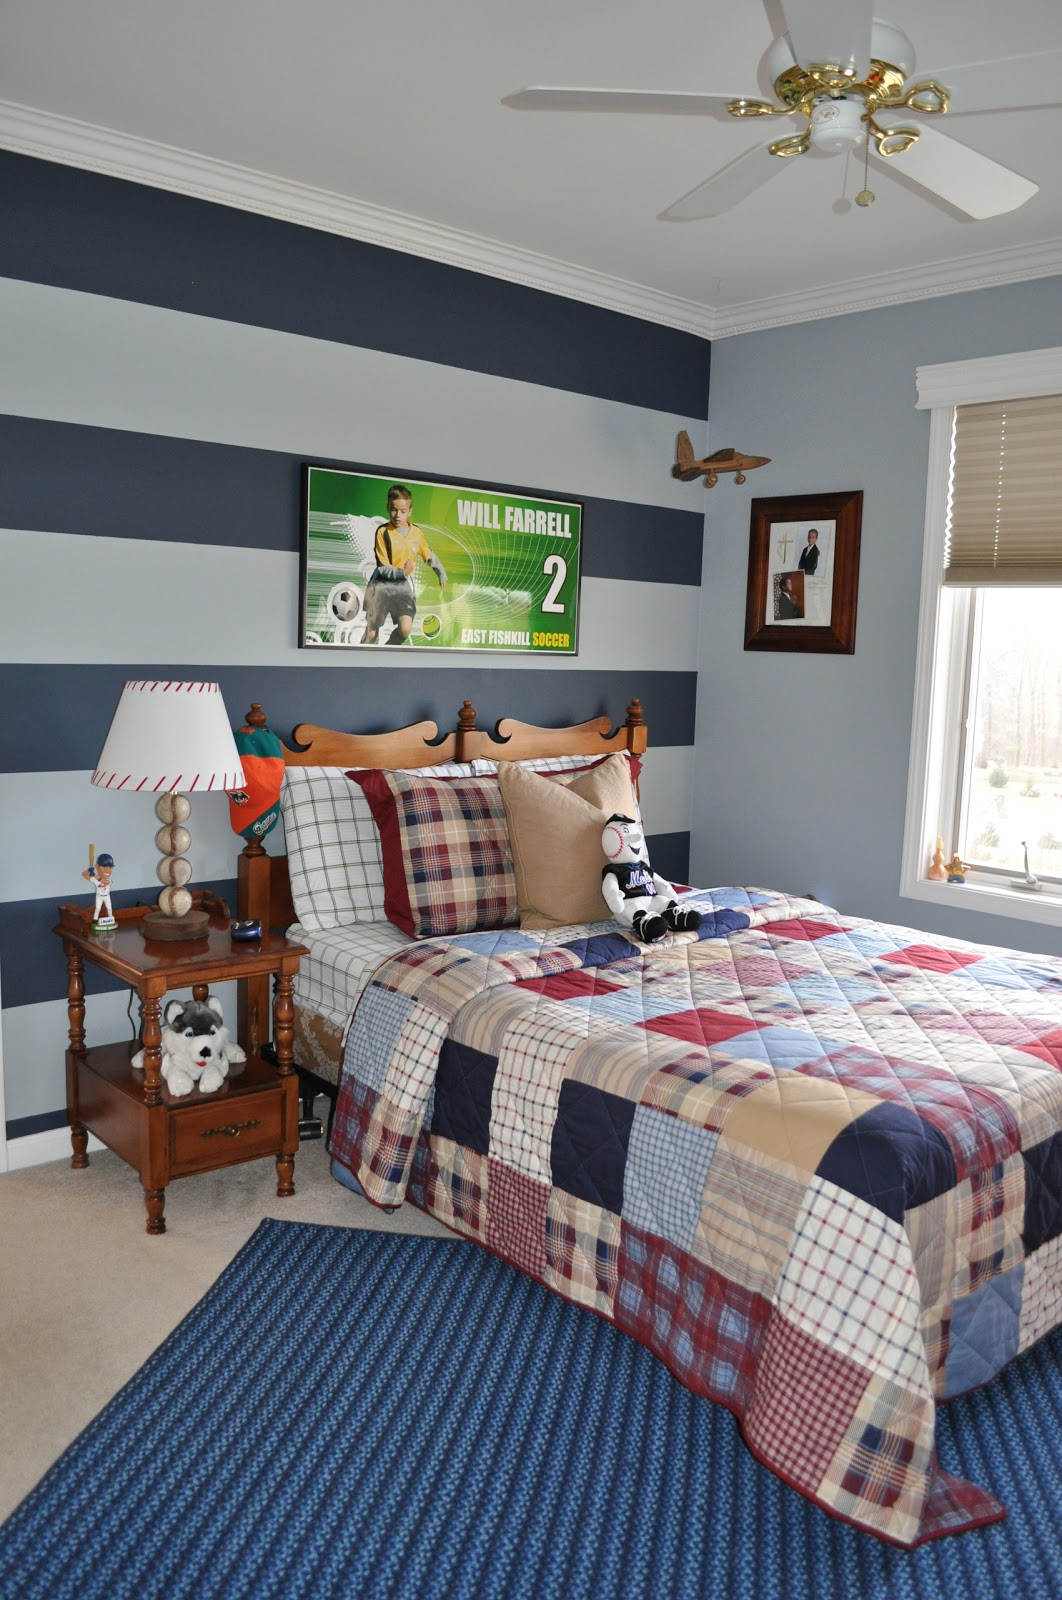 3 Room Hdb Accent Wall: Northern Nesting: Striped Accent Wall